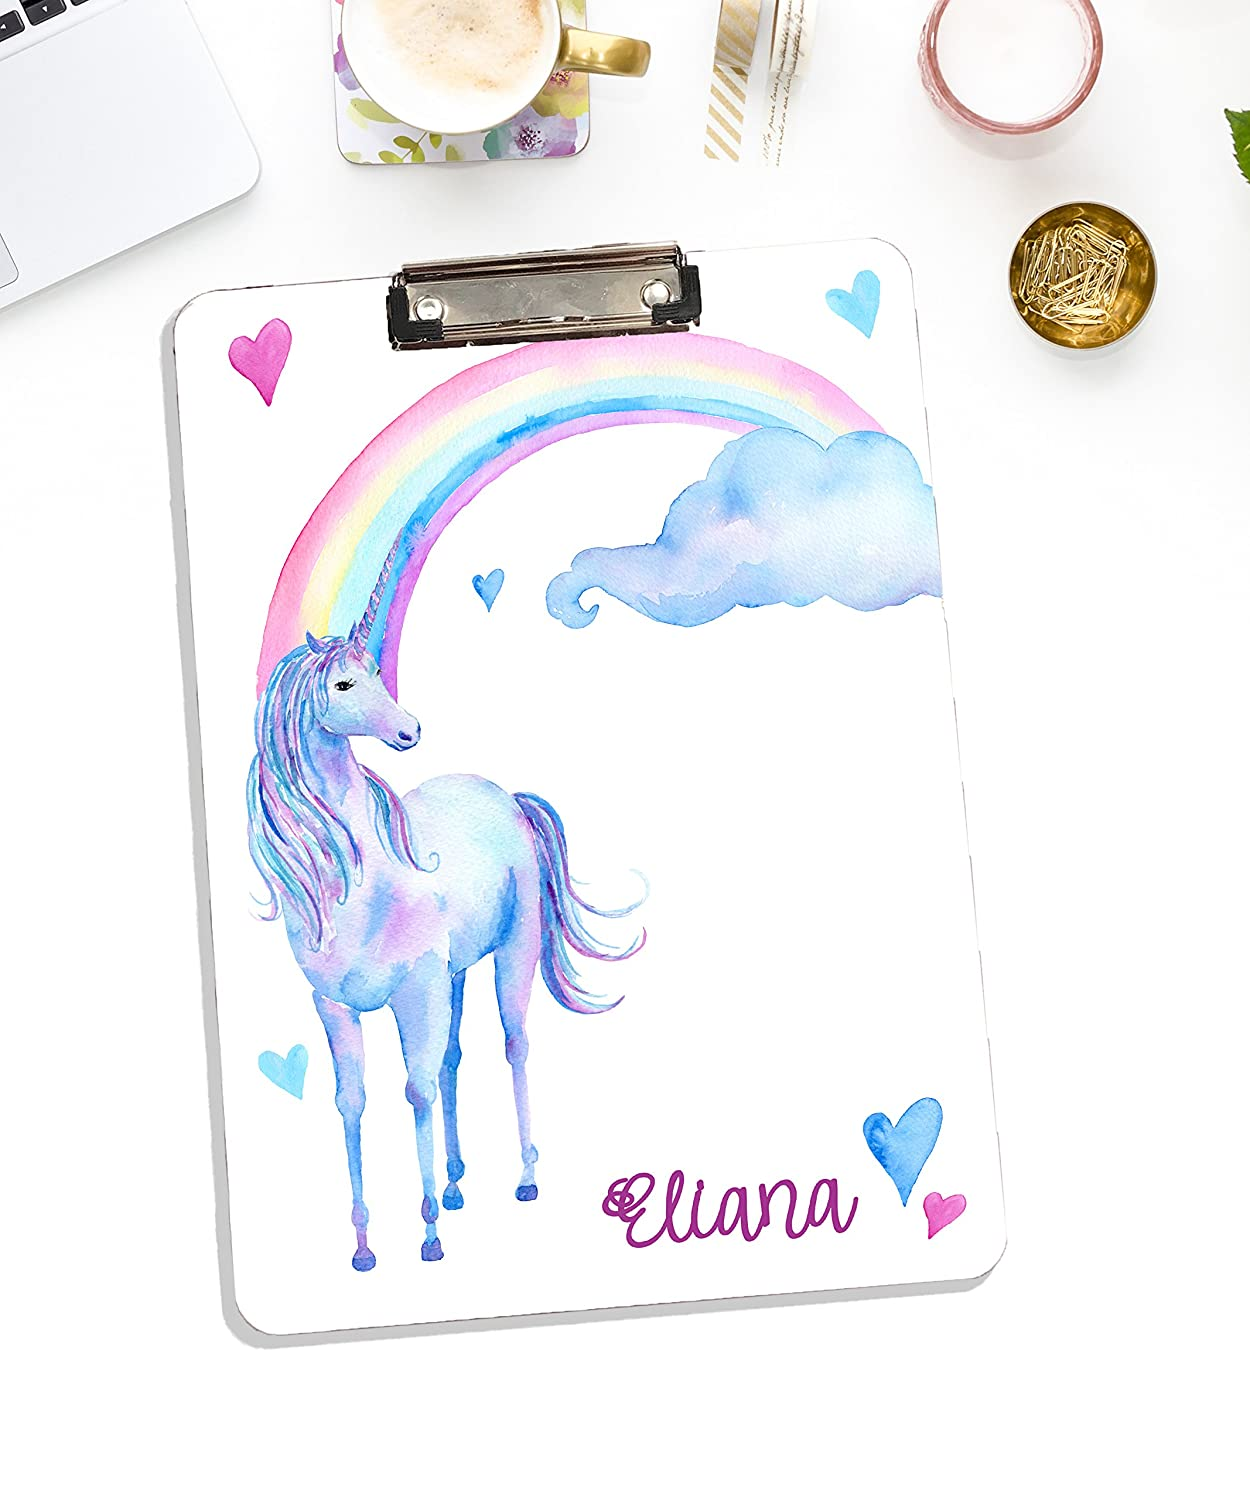 Personalized Whiteboard Clipboard With Unicorn